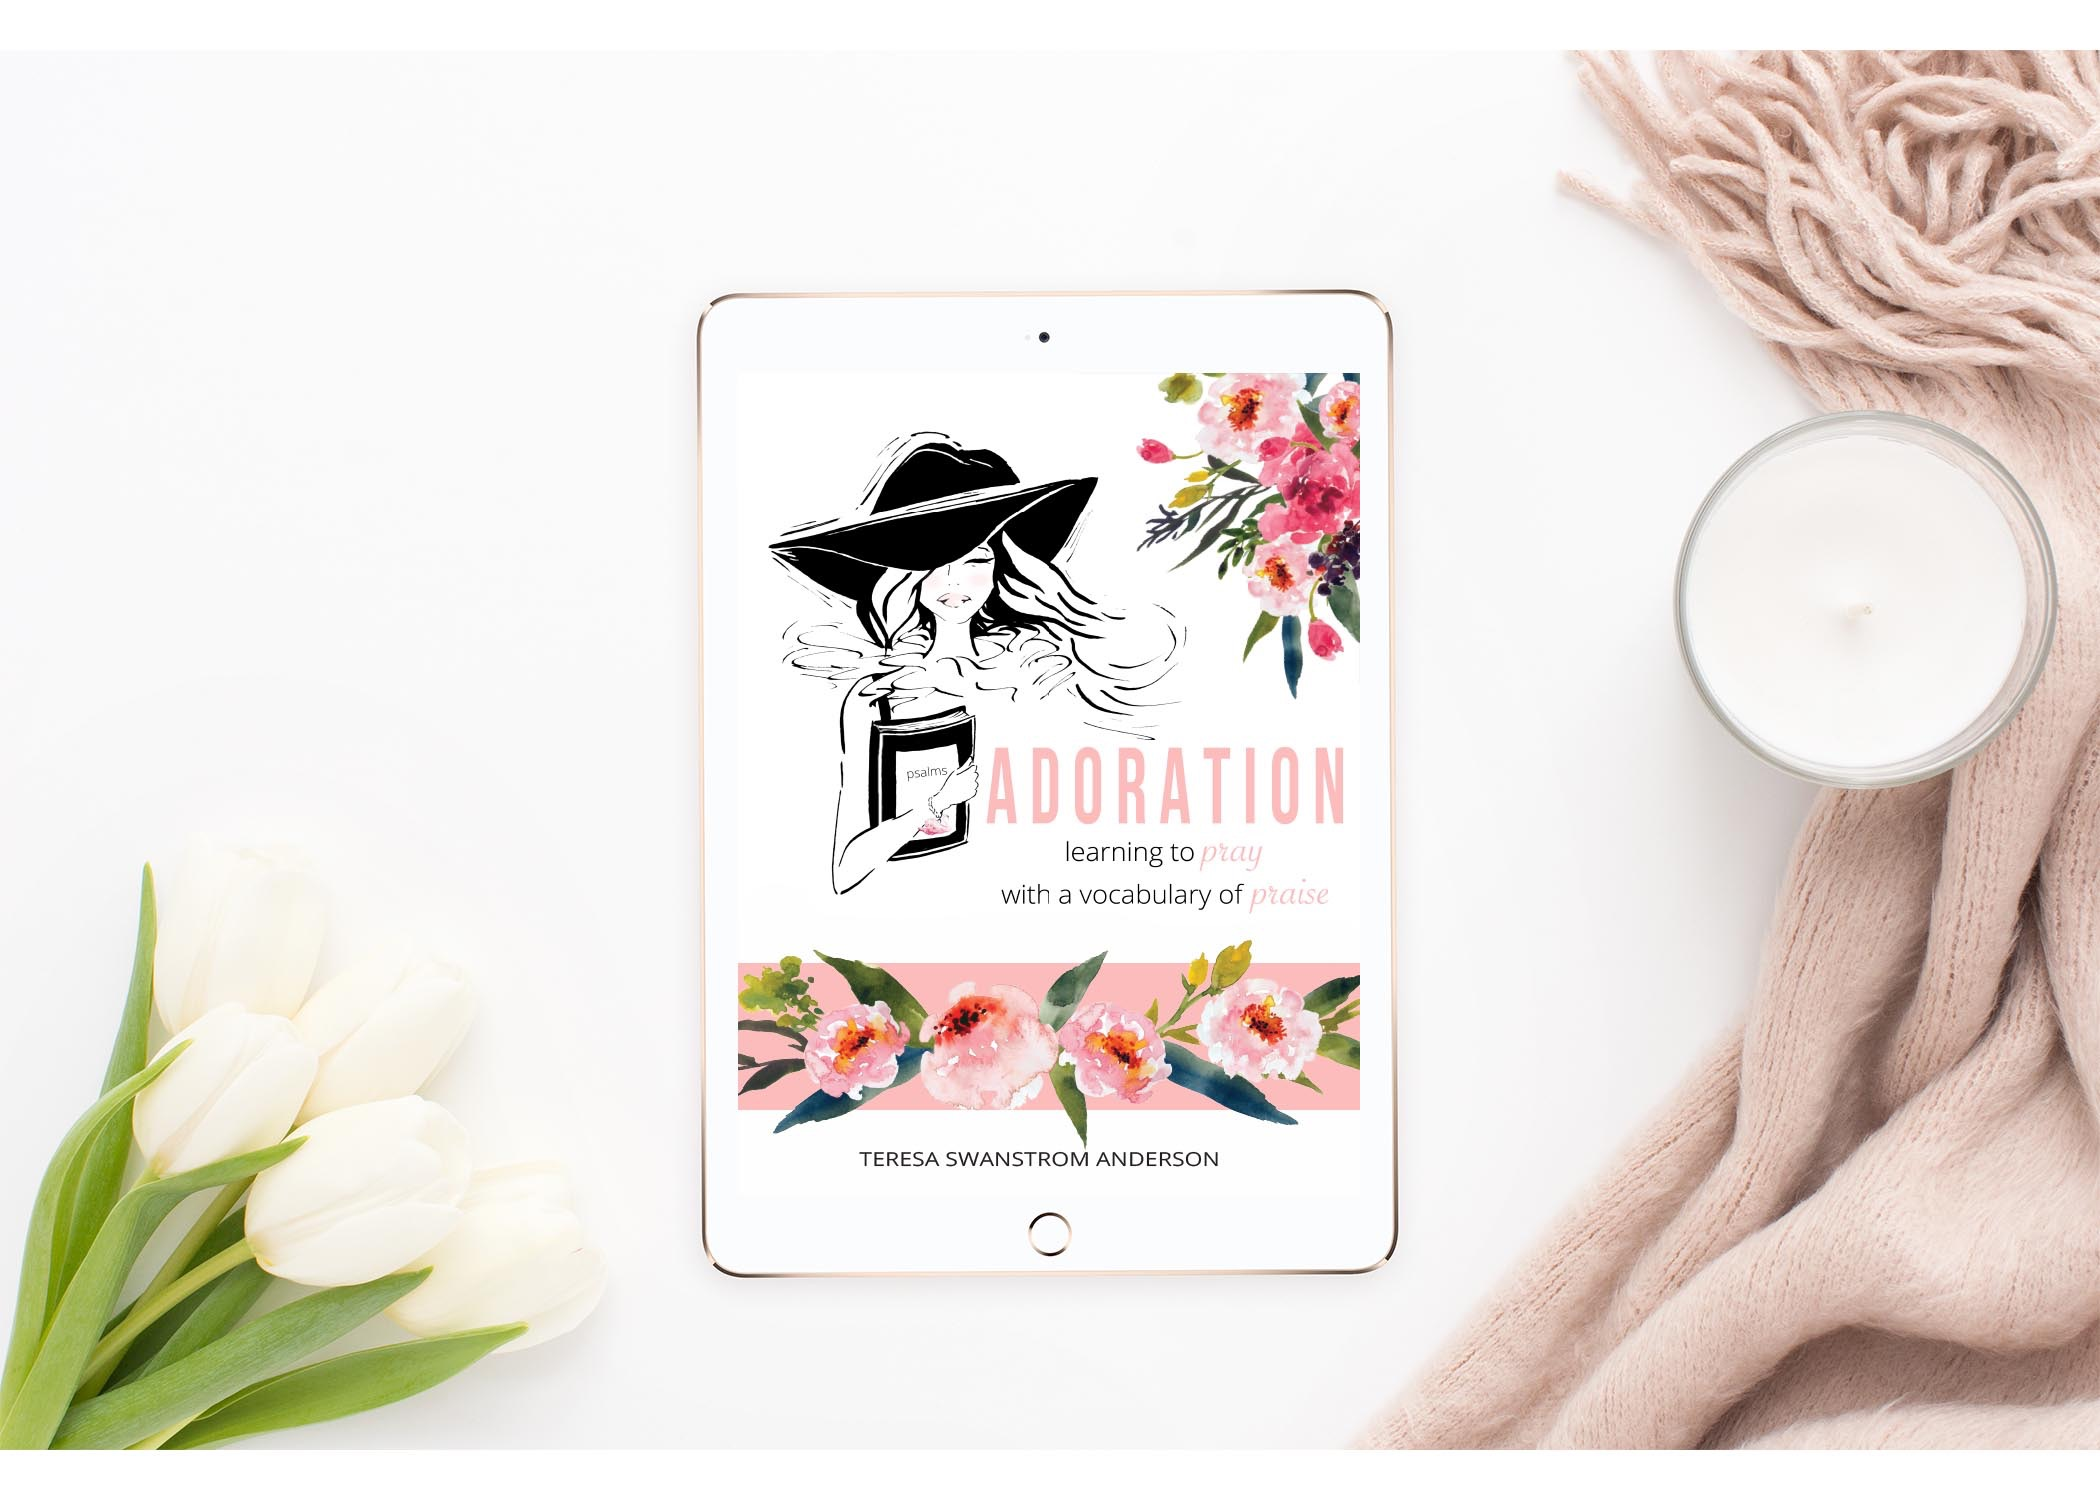 (FREE) 10 day study - Adoration: learning how to pray with a vocabulary of praise